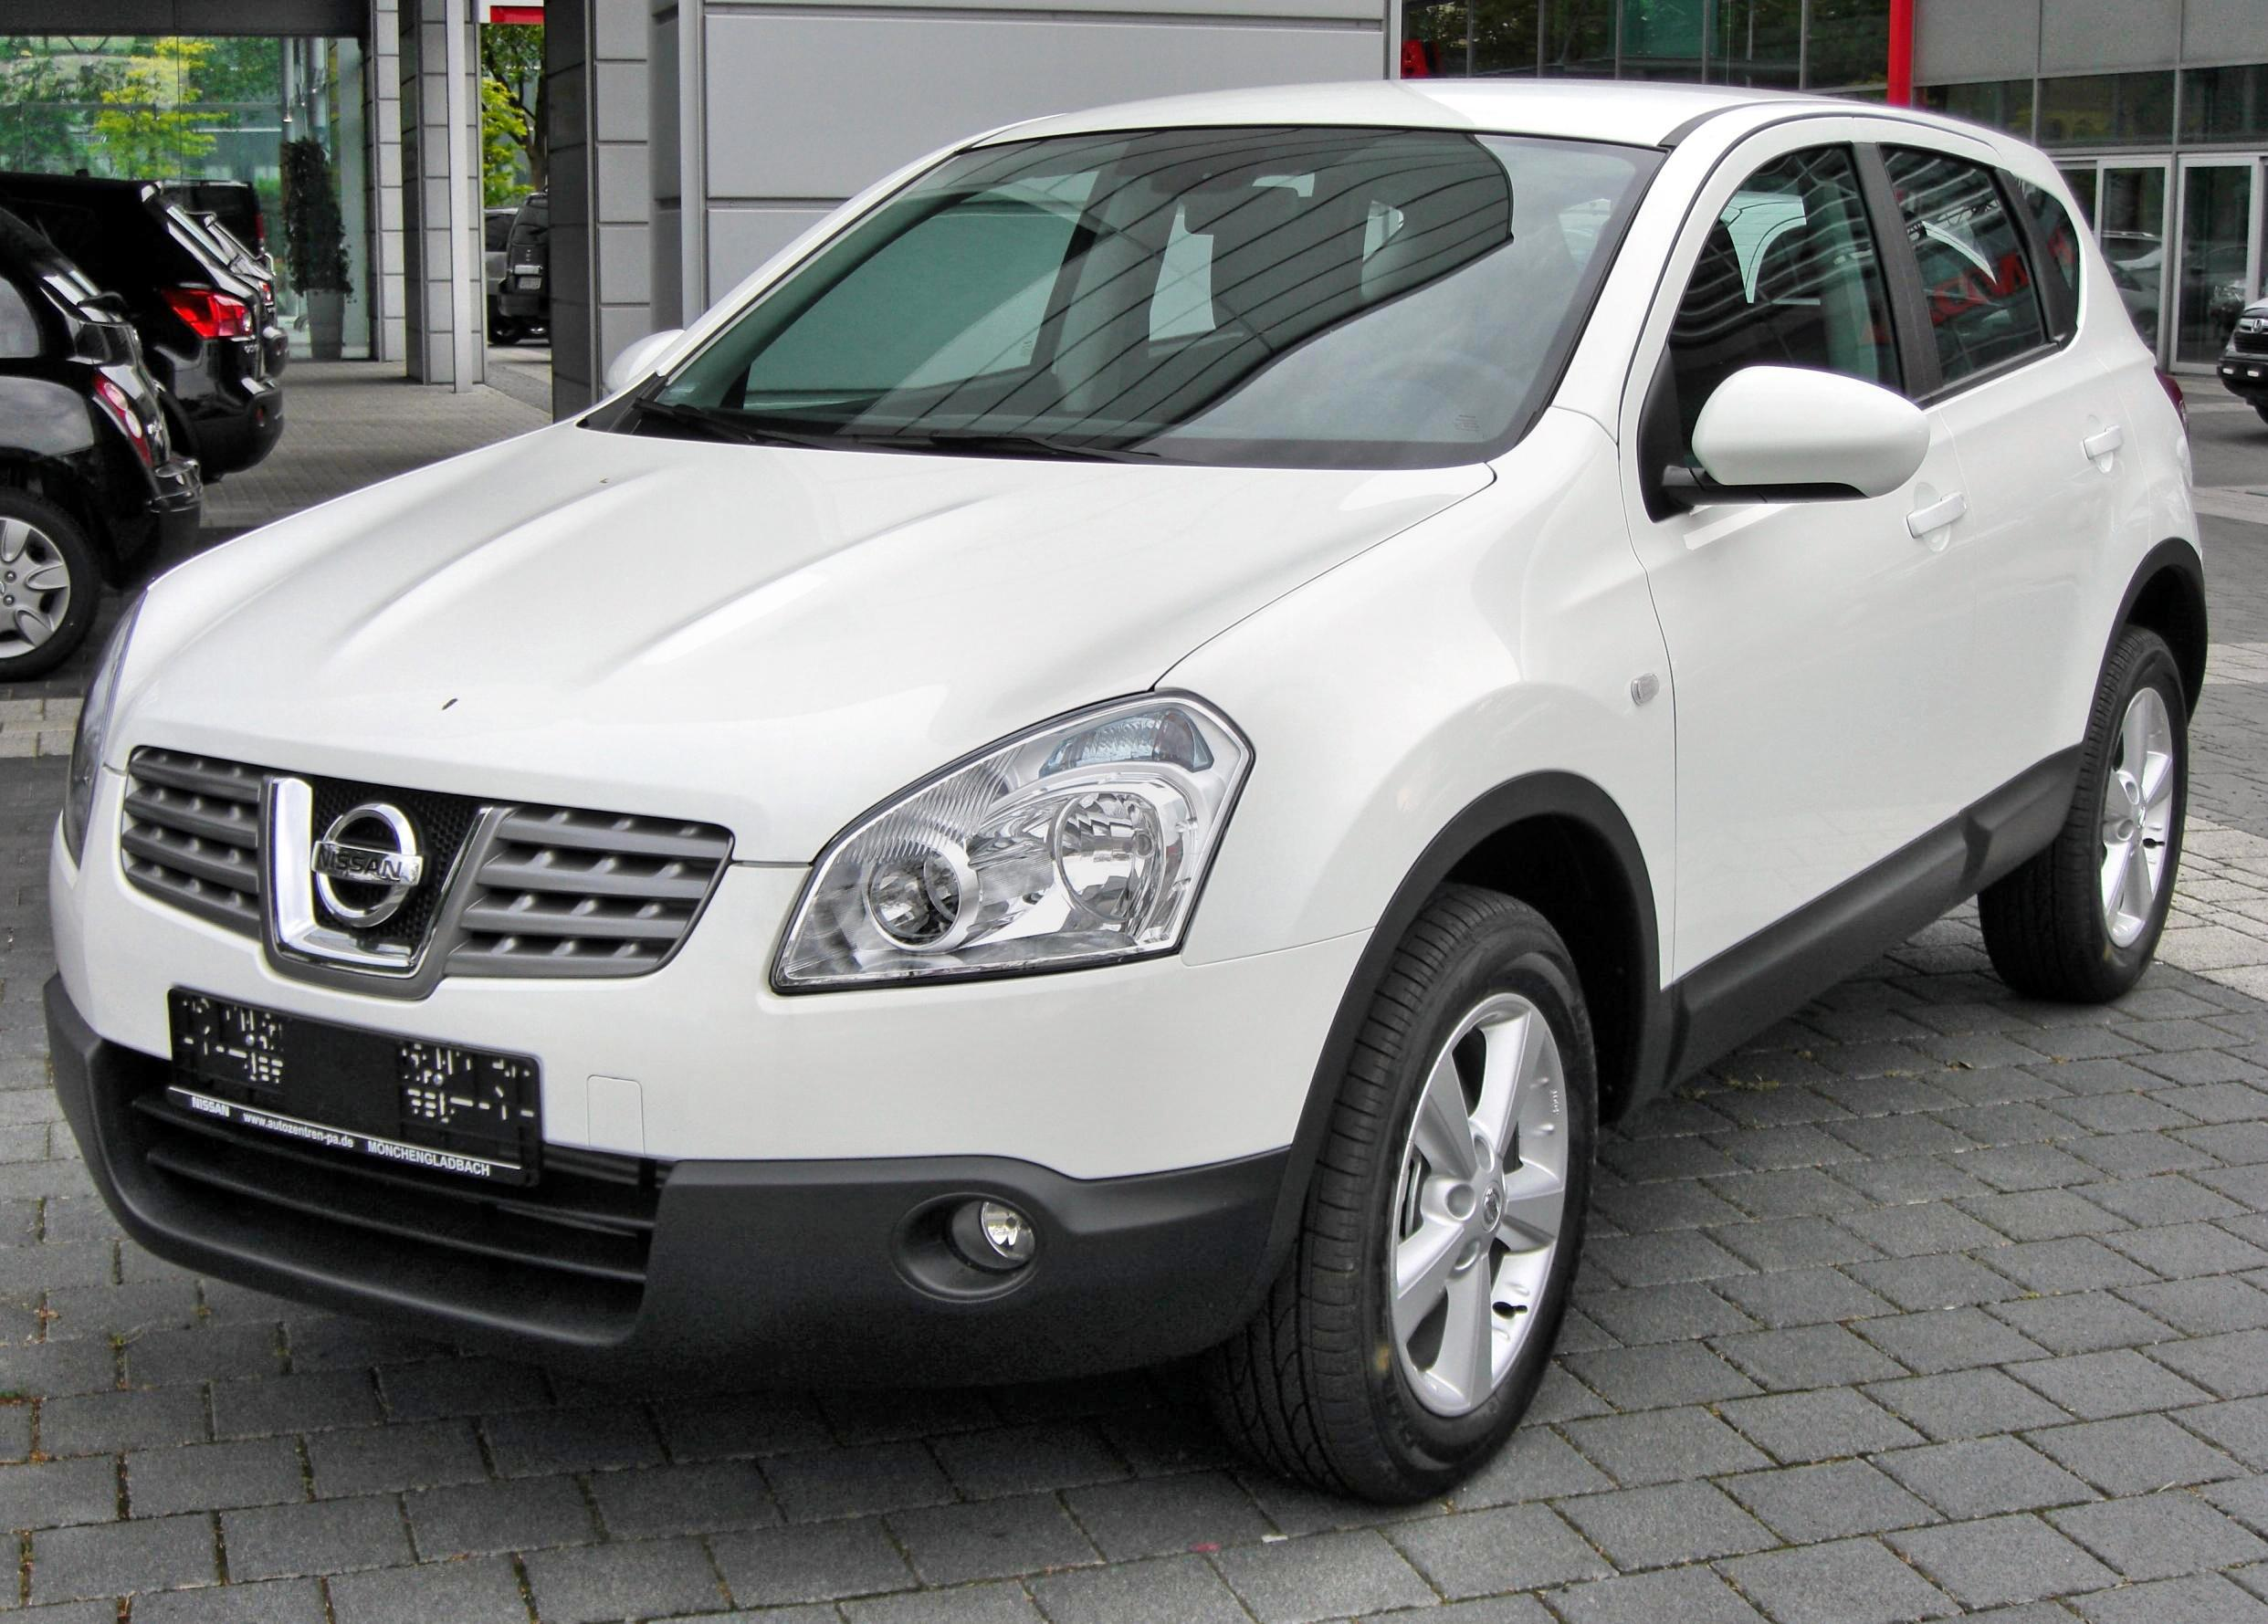 2009 nissan qashqai pictures information and specs. Black Bedroom Furniture Sets. Home Design Ideas